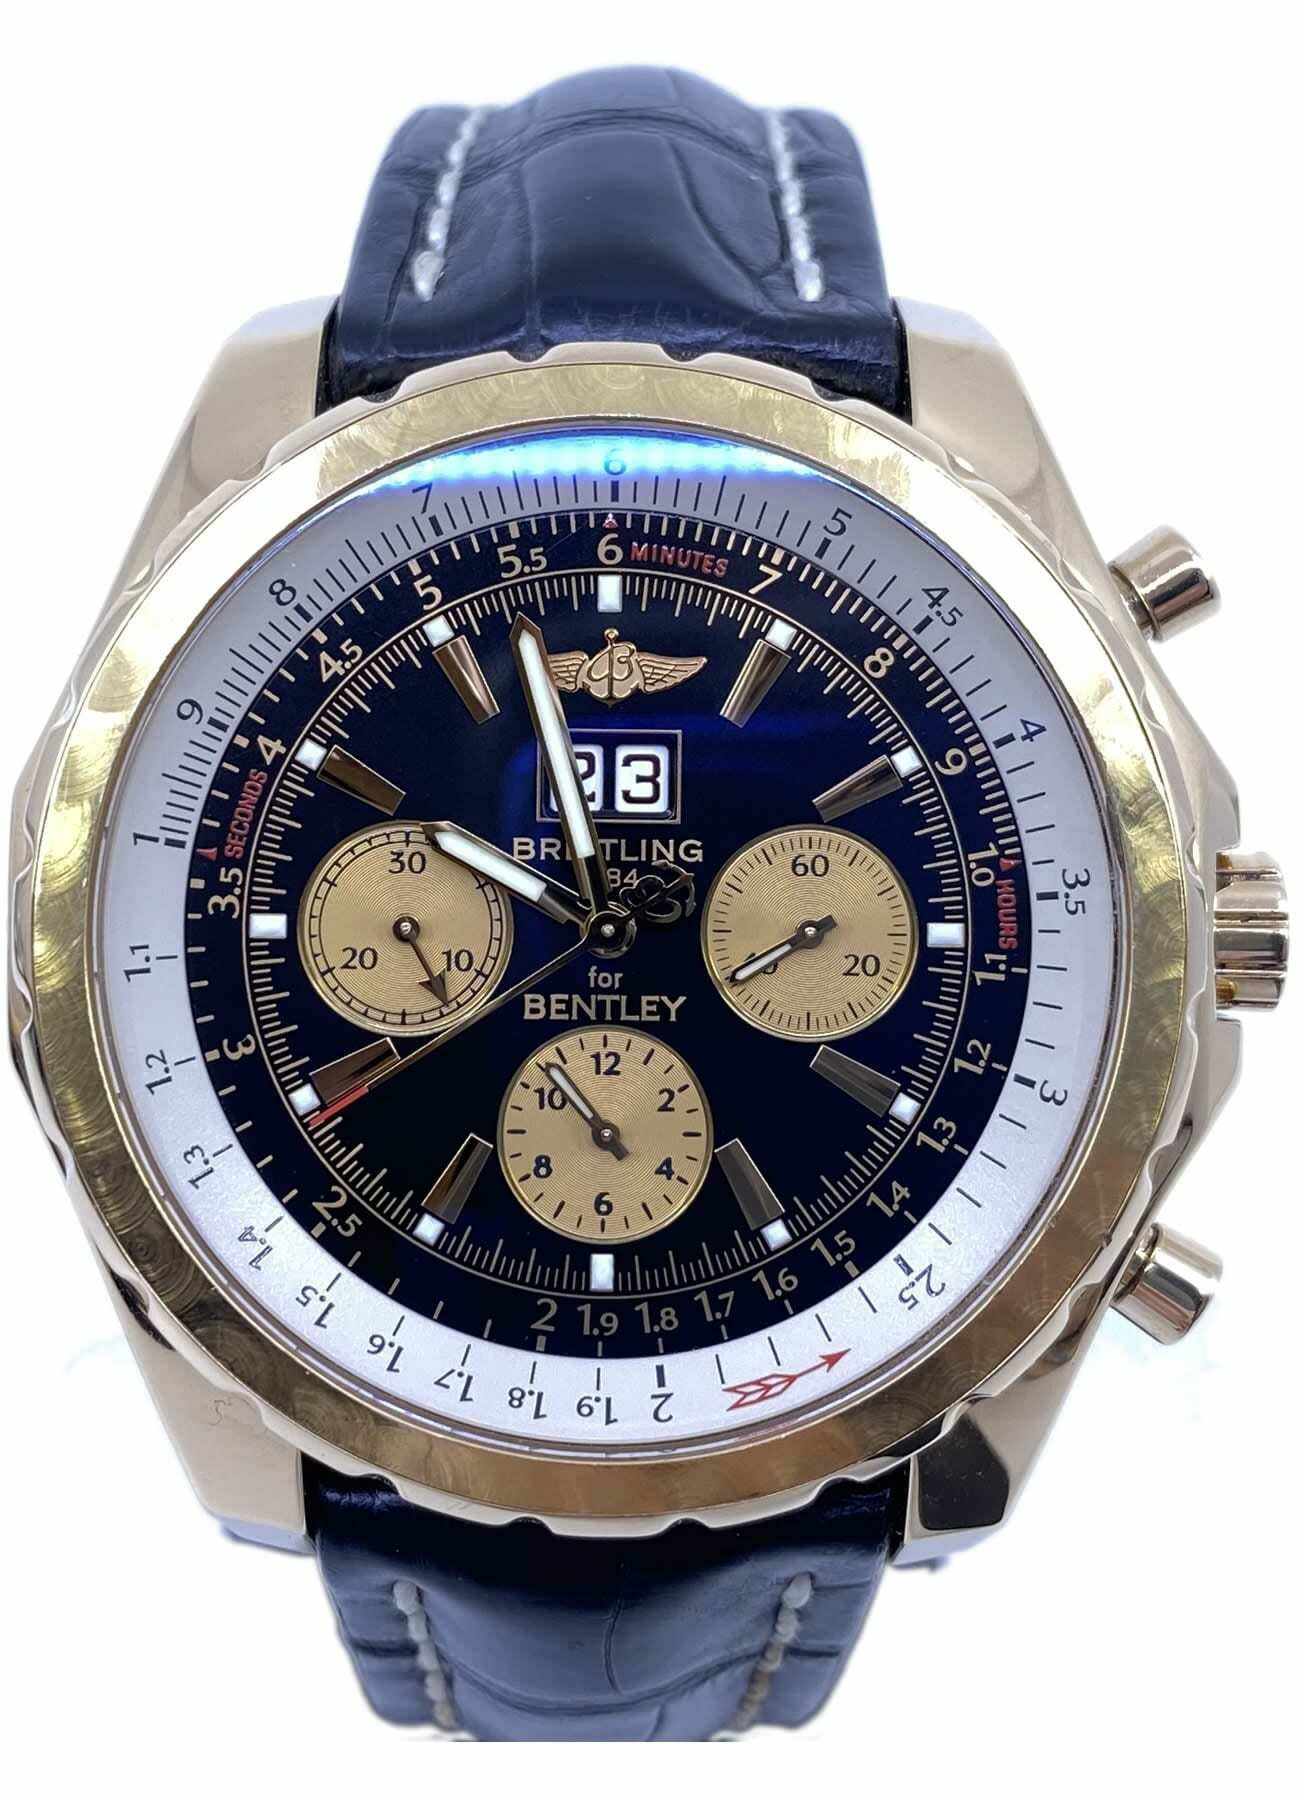 Breitling Bentley 6 75 18k Gold H44363 Exquisite Timepieces